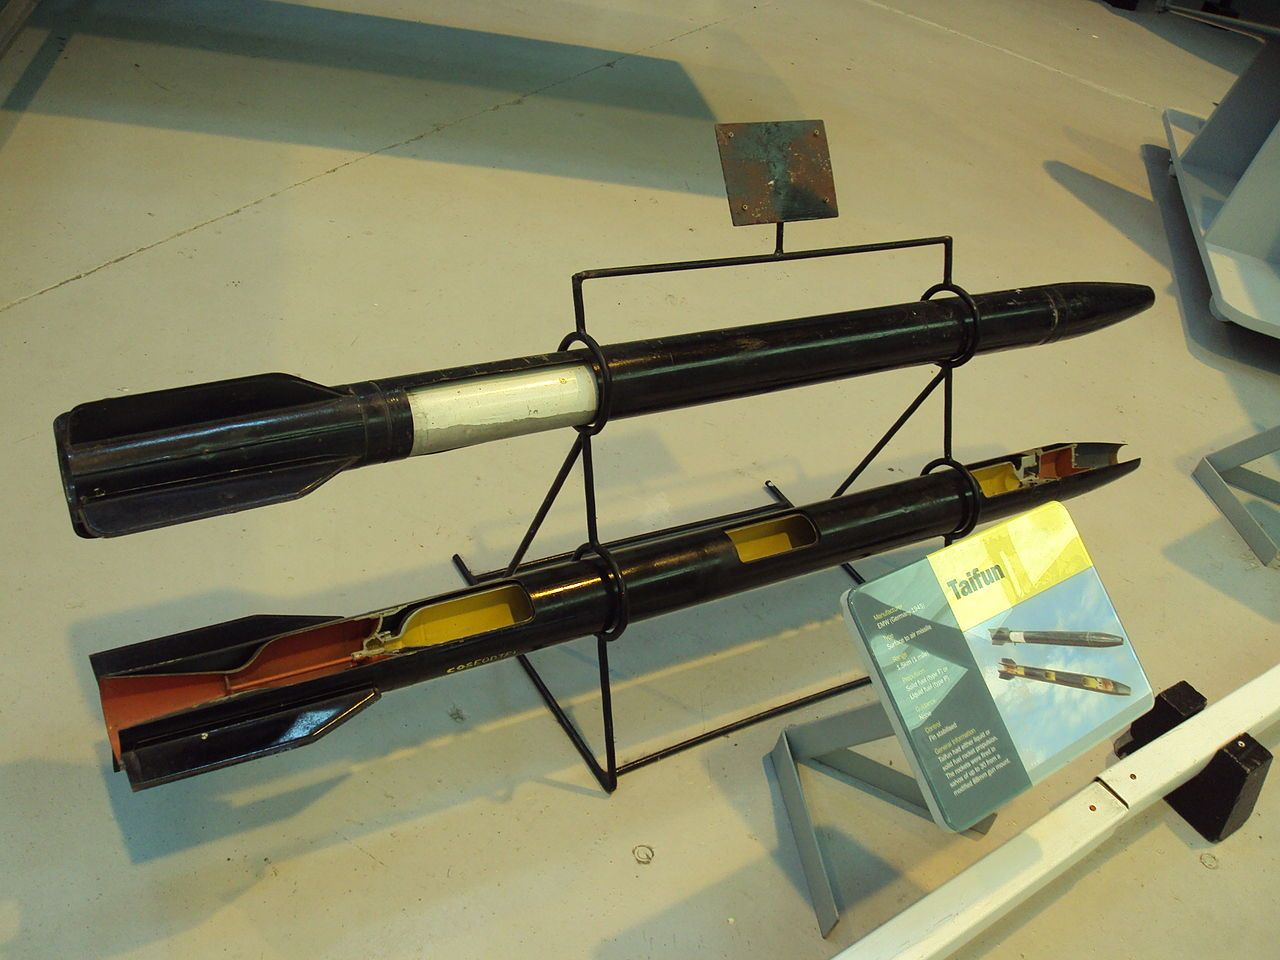 RAF Museum Cosford - DSC08606 - Taifun (rocket) - Wikipedia, the free encyclopedia